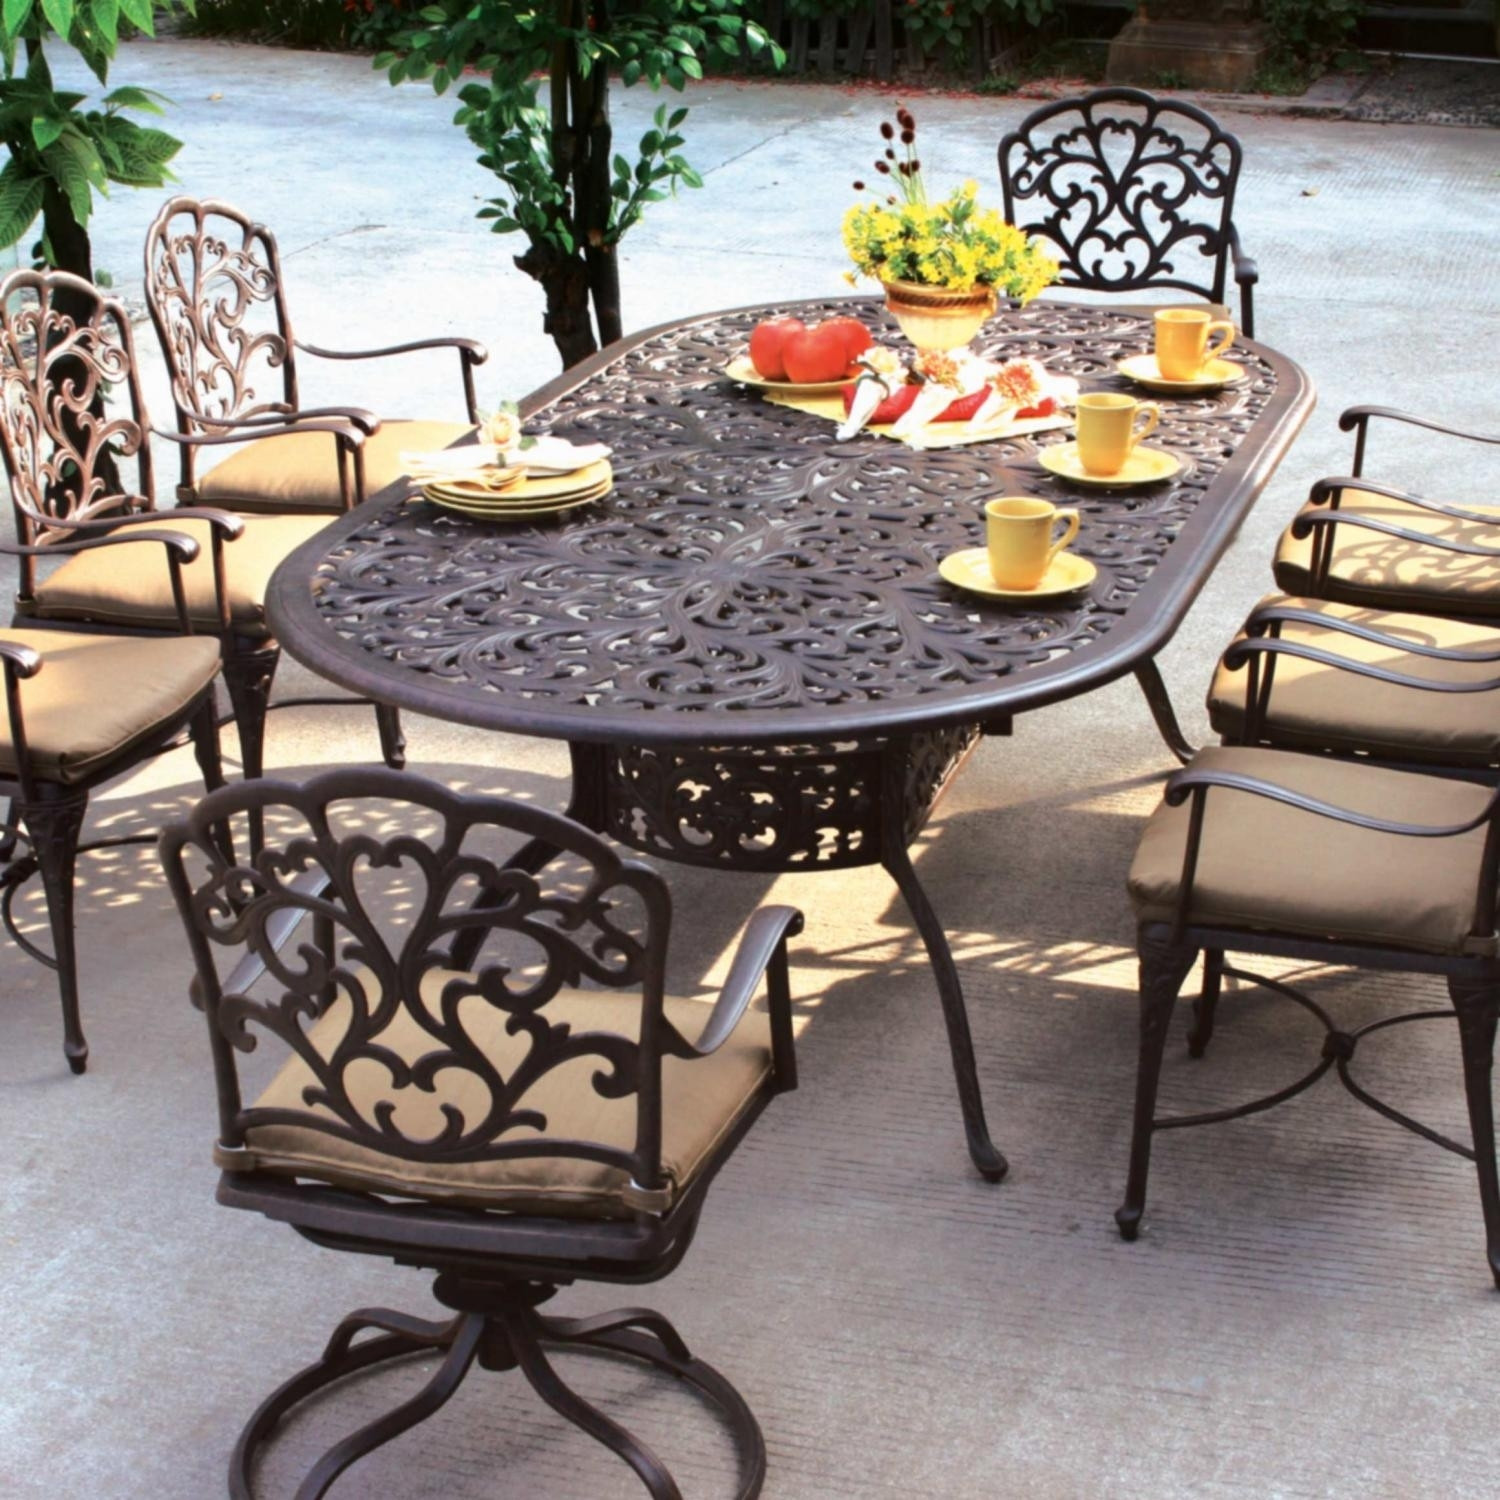 Best ideas about Wrought Iron Patio Furniture Lowes . Save or Pin Affordable Diy Patio Furniture Ideas For You — The Home Now.